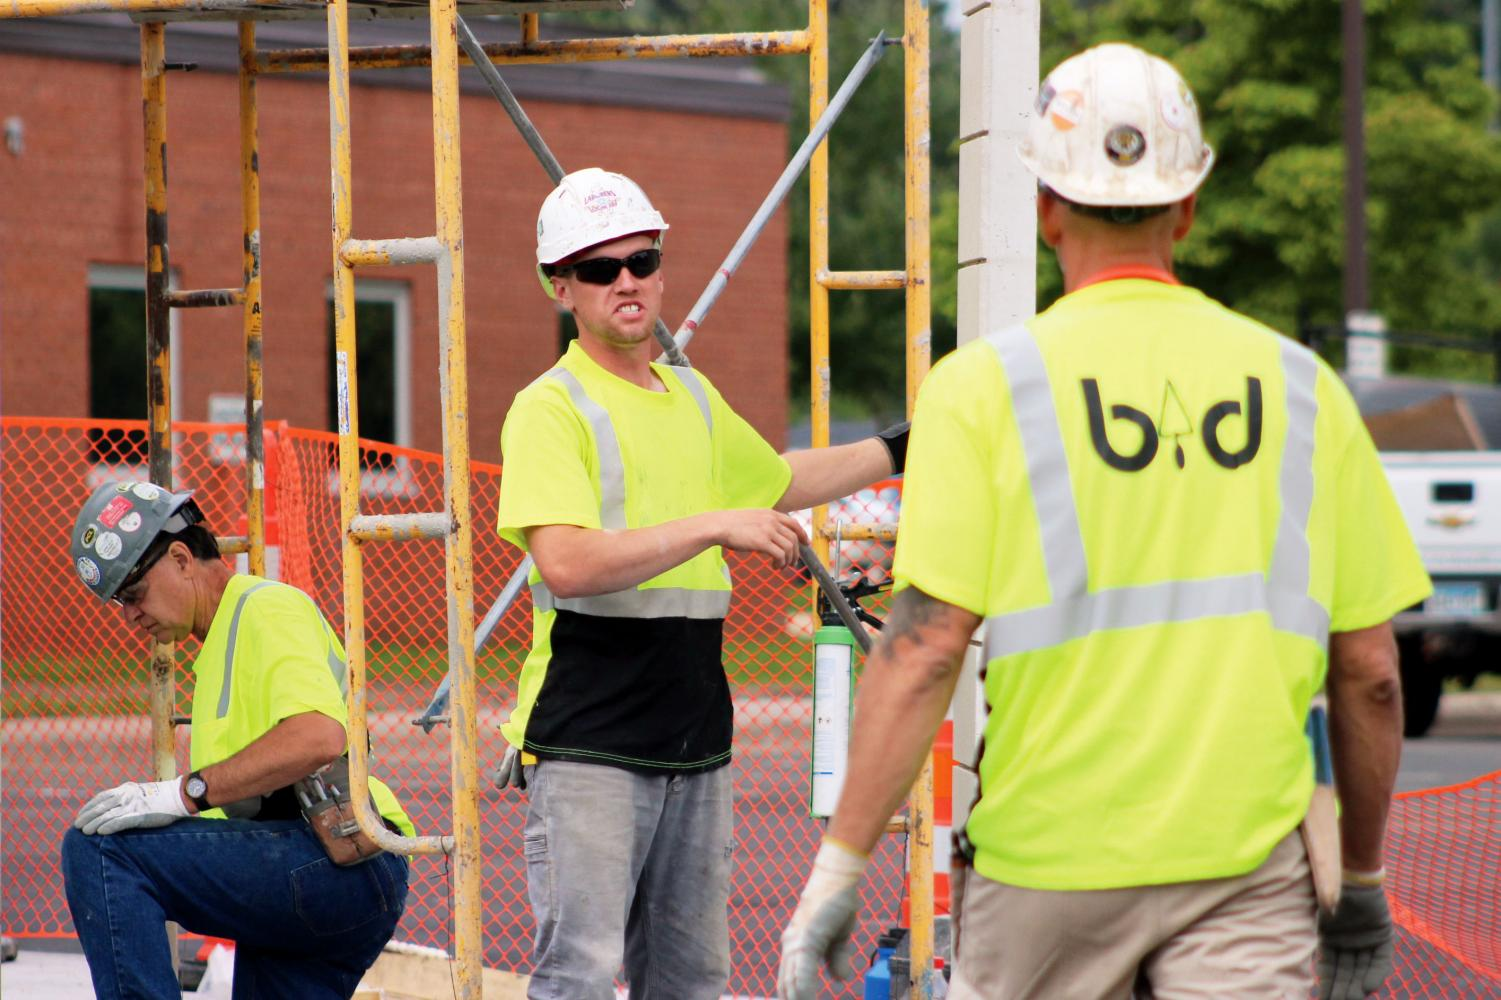 Construction workers finish putting in a wall at the north entrance Aug. 26. According to Thomas Bravo, construction has progressed through the summer and will continue on the fitness center throughout the school year.